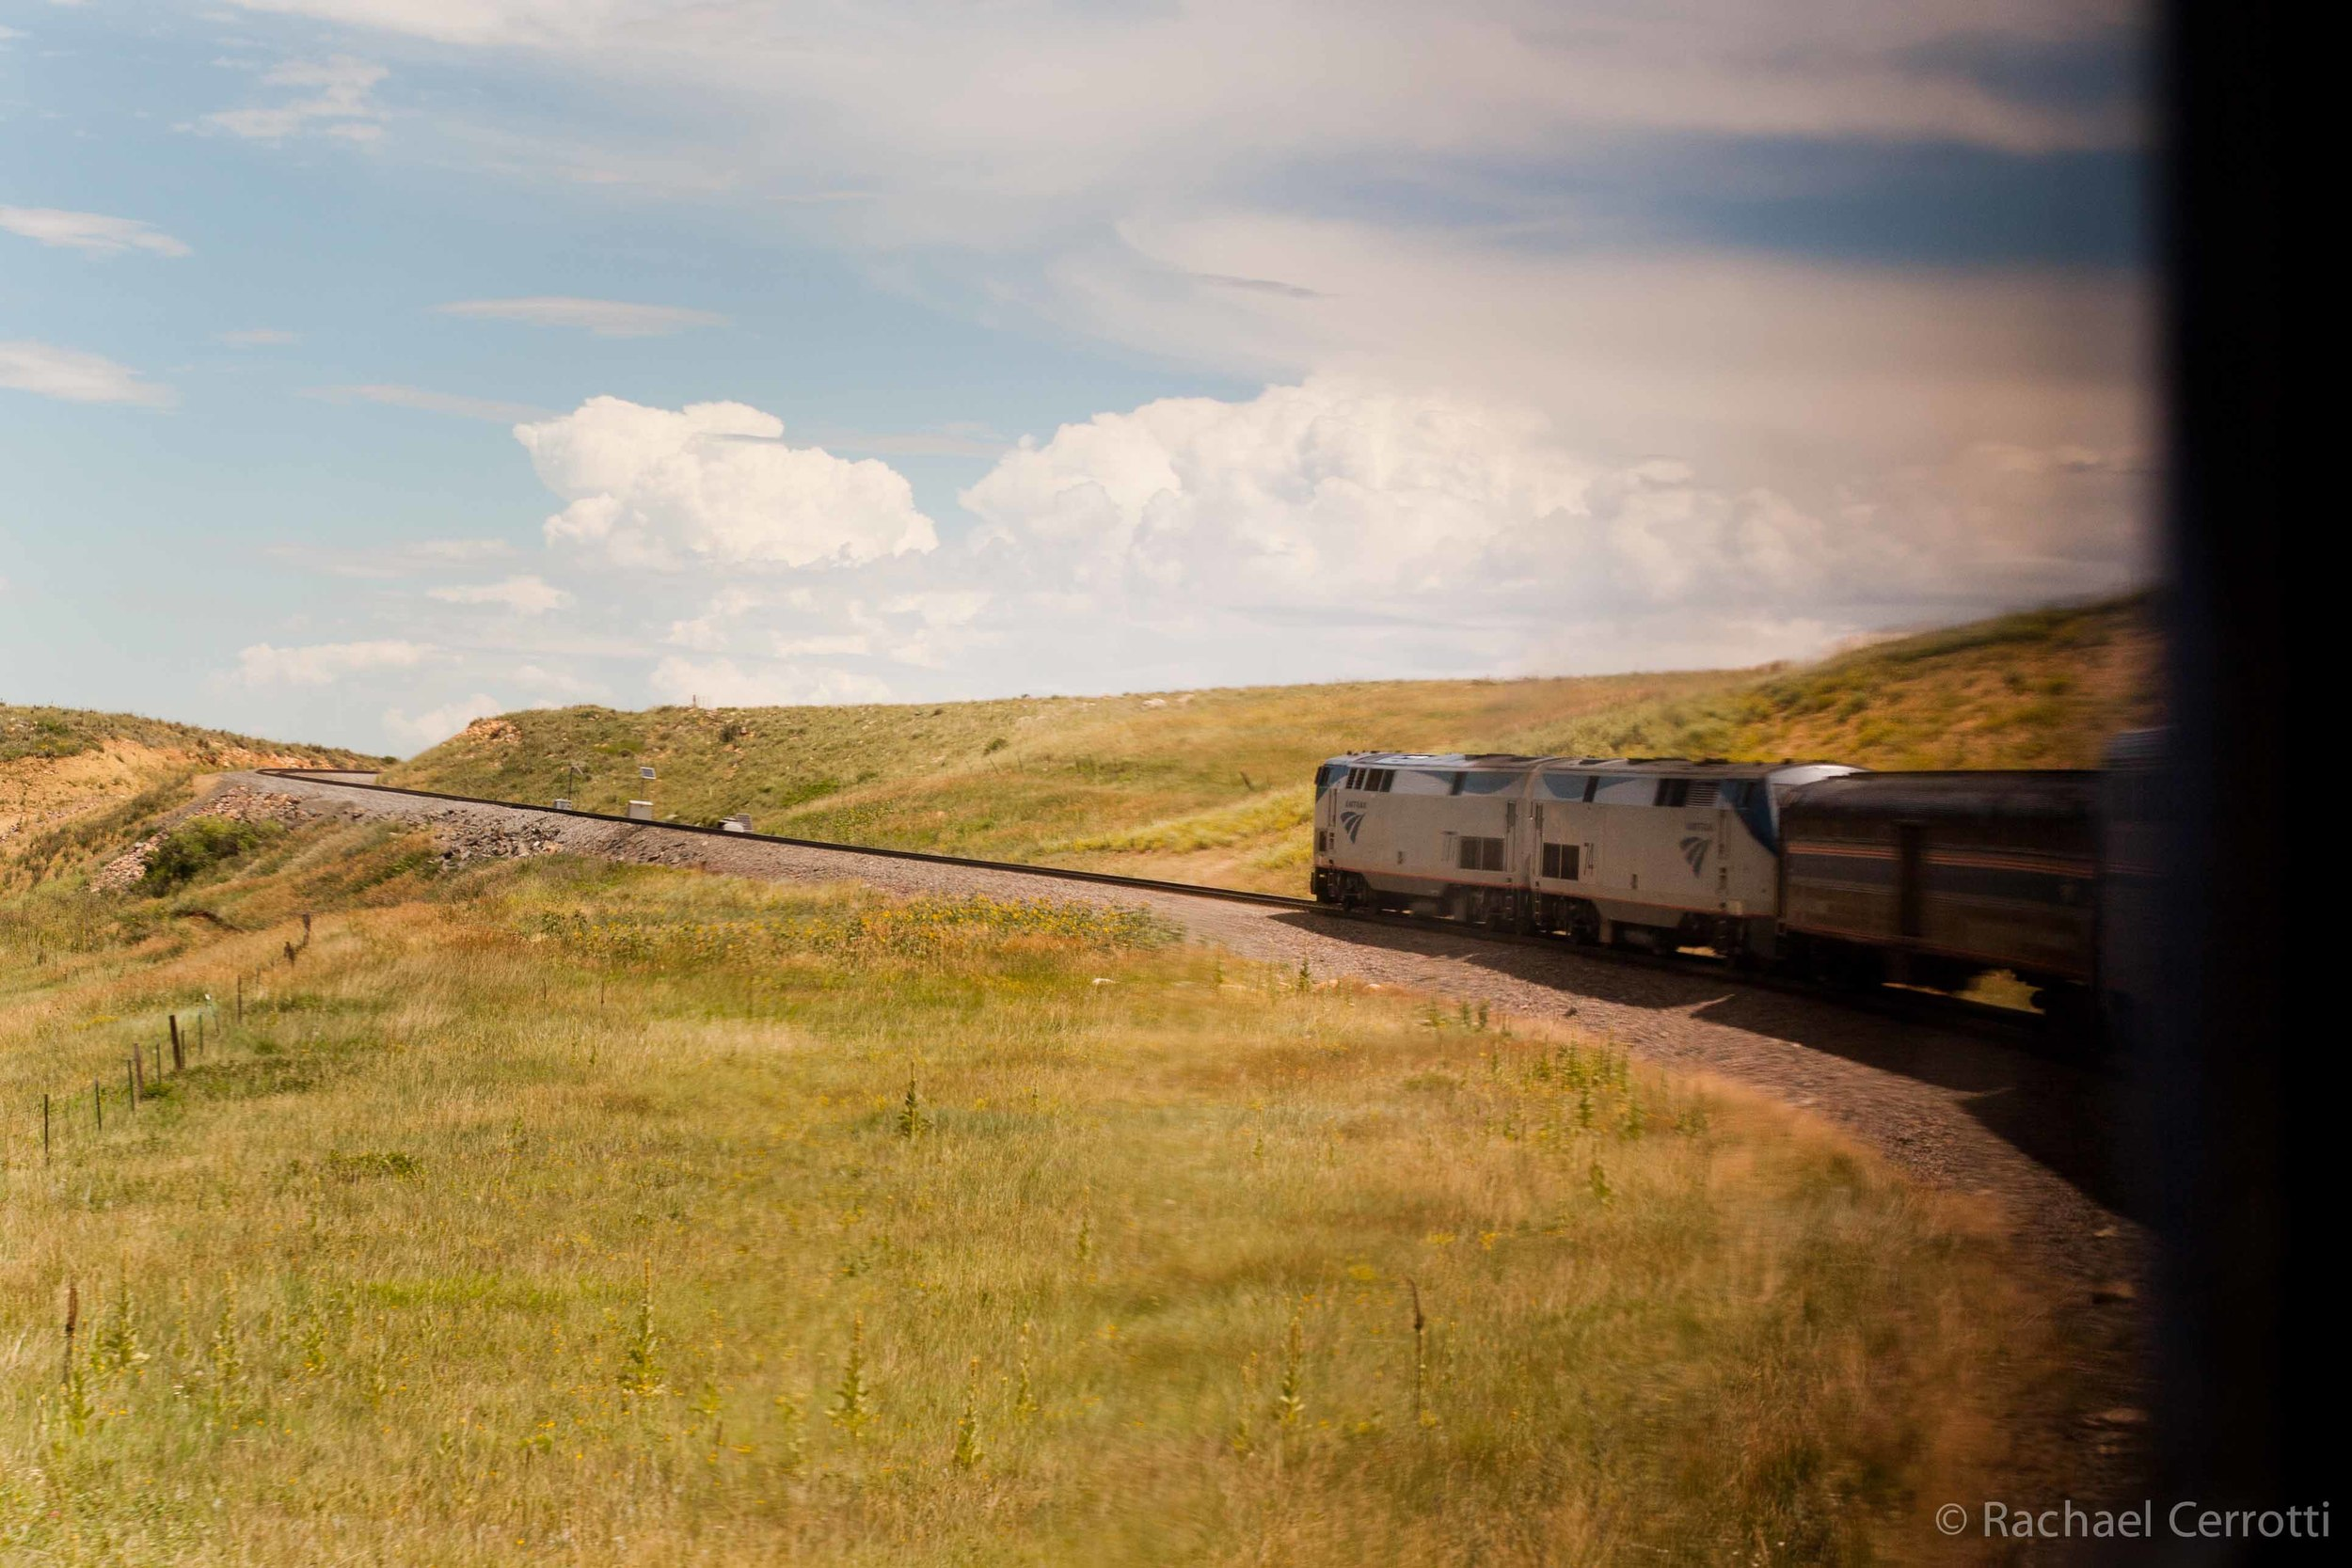 The California Zephyr snakes through the Rockies. I loved being able to see the front of the train winding through the mountains – a sight you would never see in the flat lands of America.